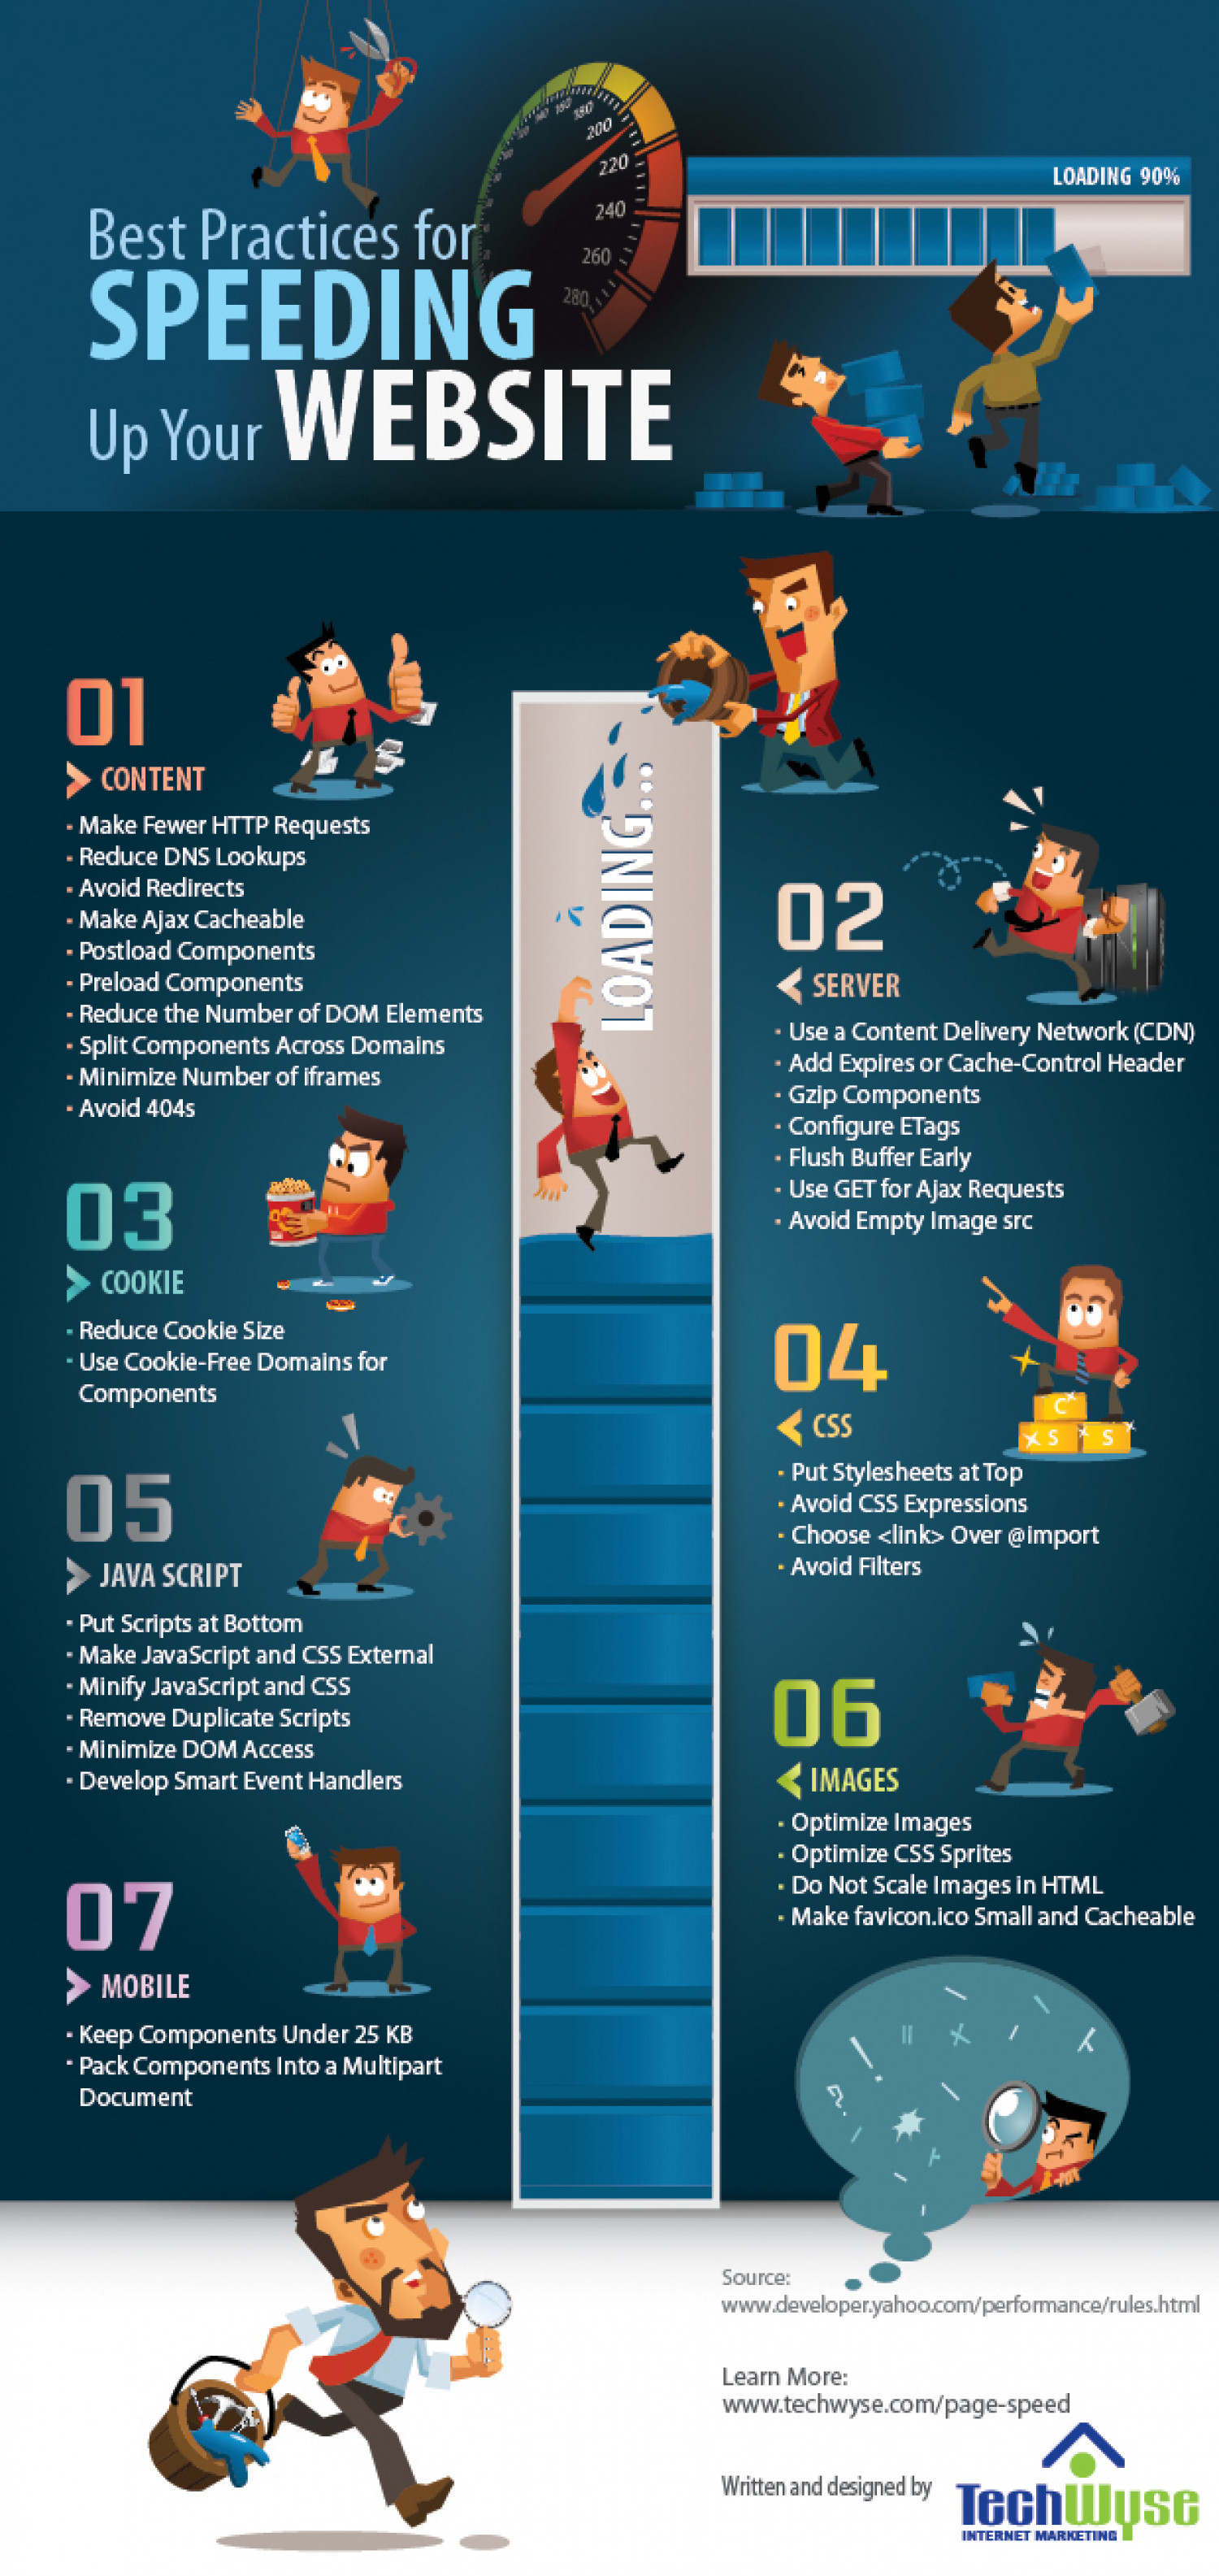 Speeding Up Your Website Infographic